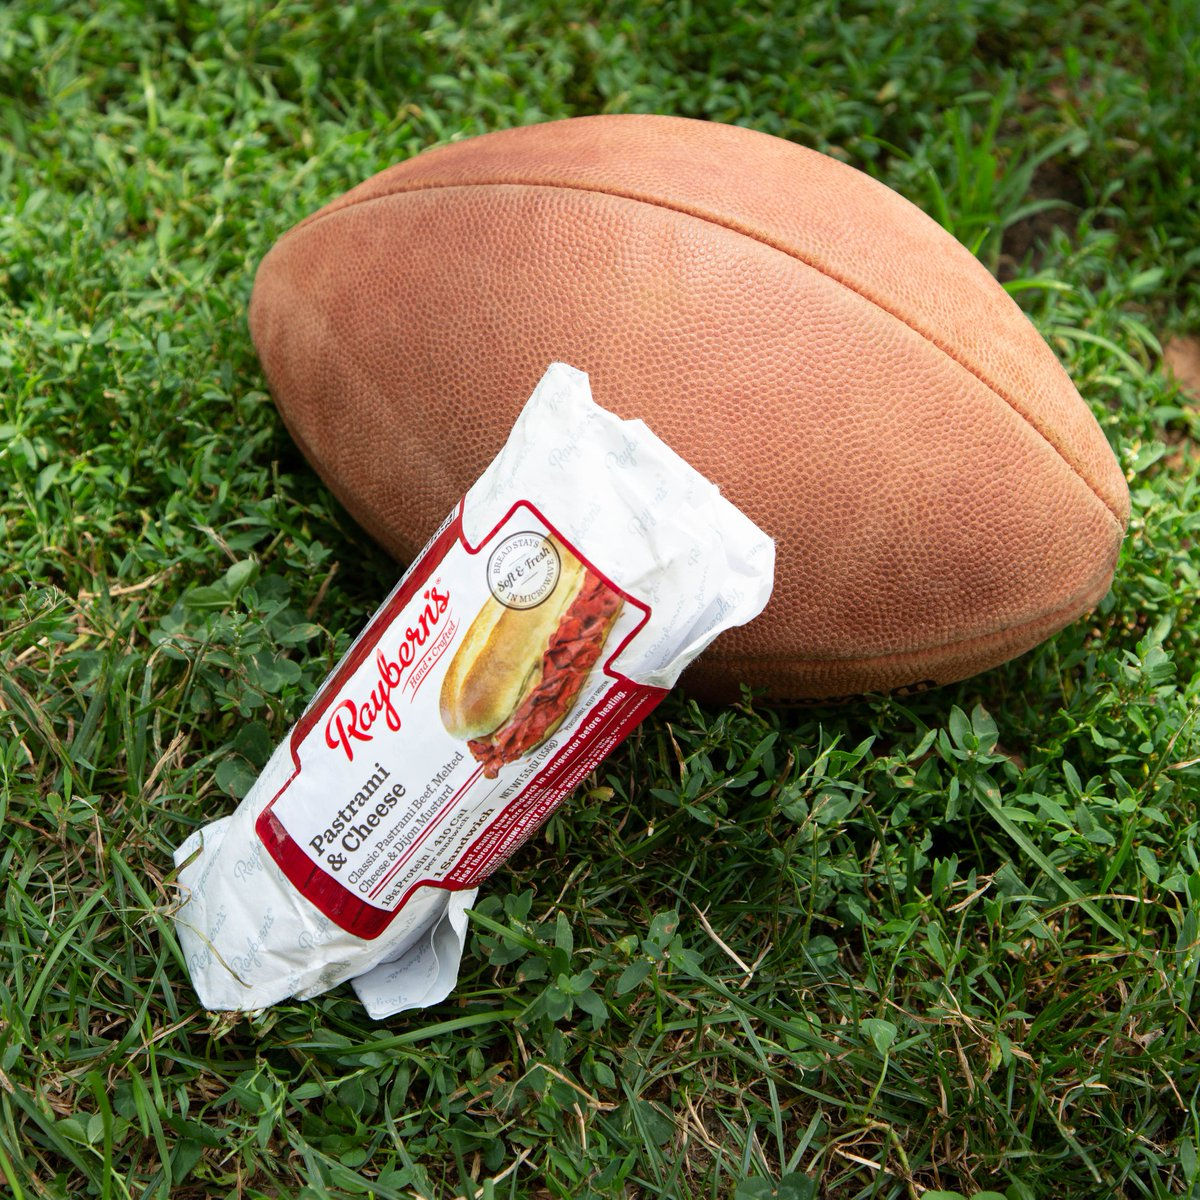 If you're already planning the ultimate #tailgate for the biggest game of the year, then you must already know about the meatiest #sandwich in the game. 😋🏈  You're going to want Raybern's on your team for this one. Feed the whole crew and find us here: